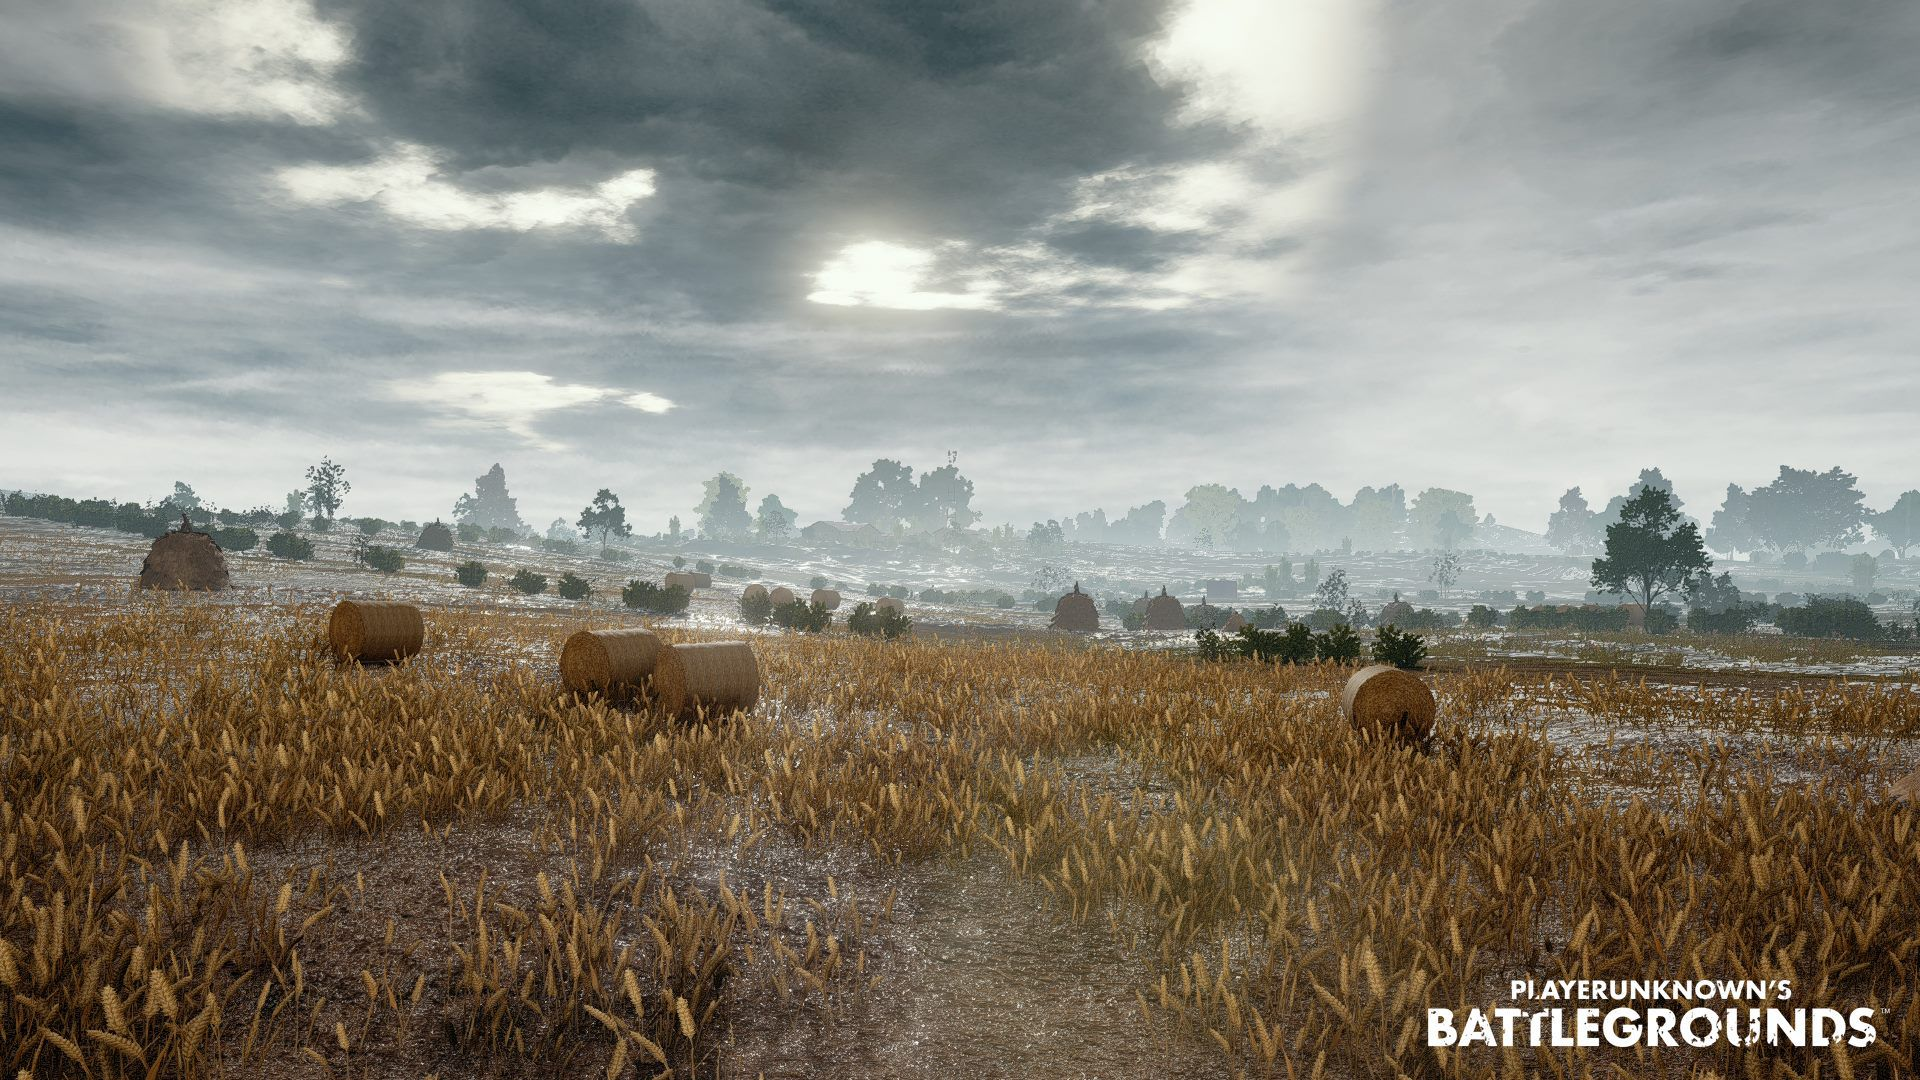 Pubg Map Hd Wallpaper: PlayerUnknown's Battlegrounds: PUBG Wallpapers And Photos